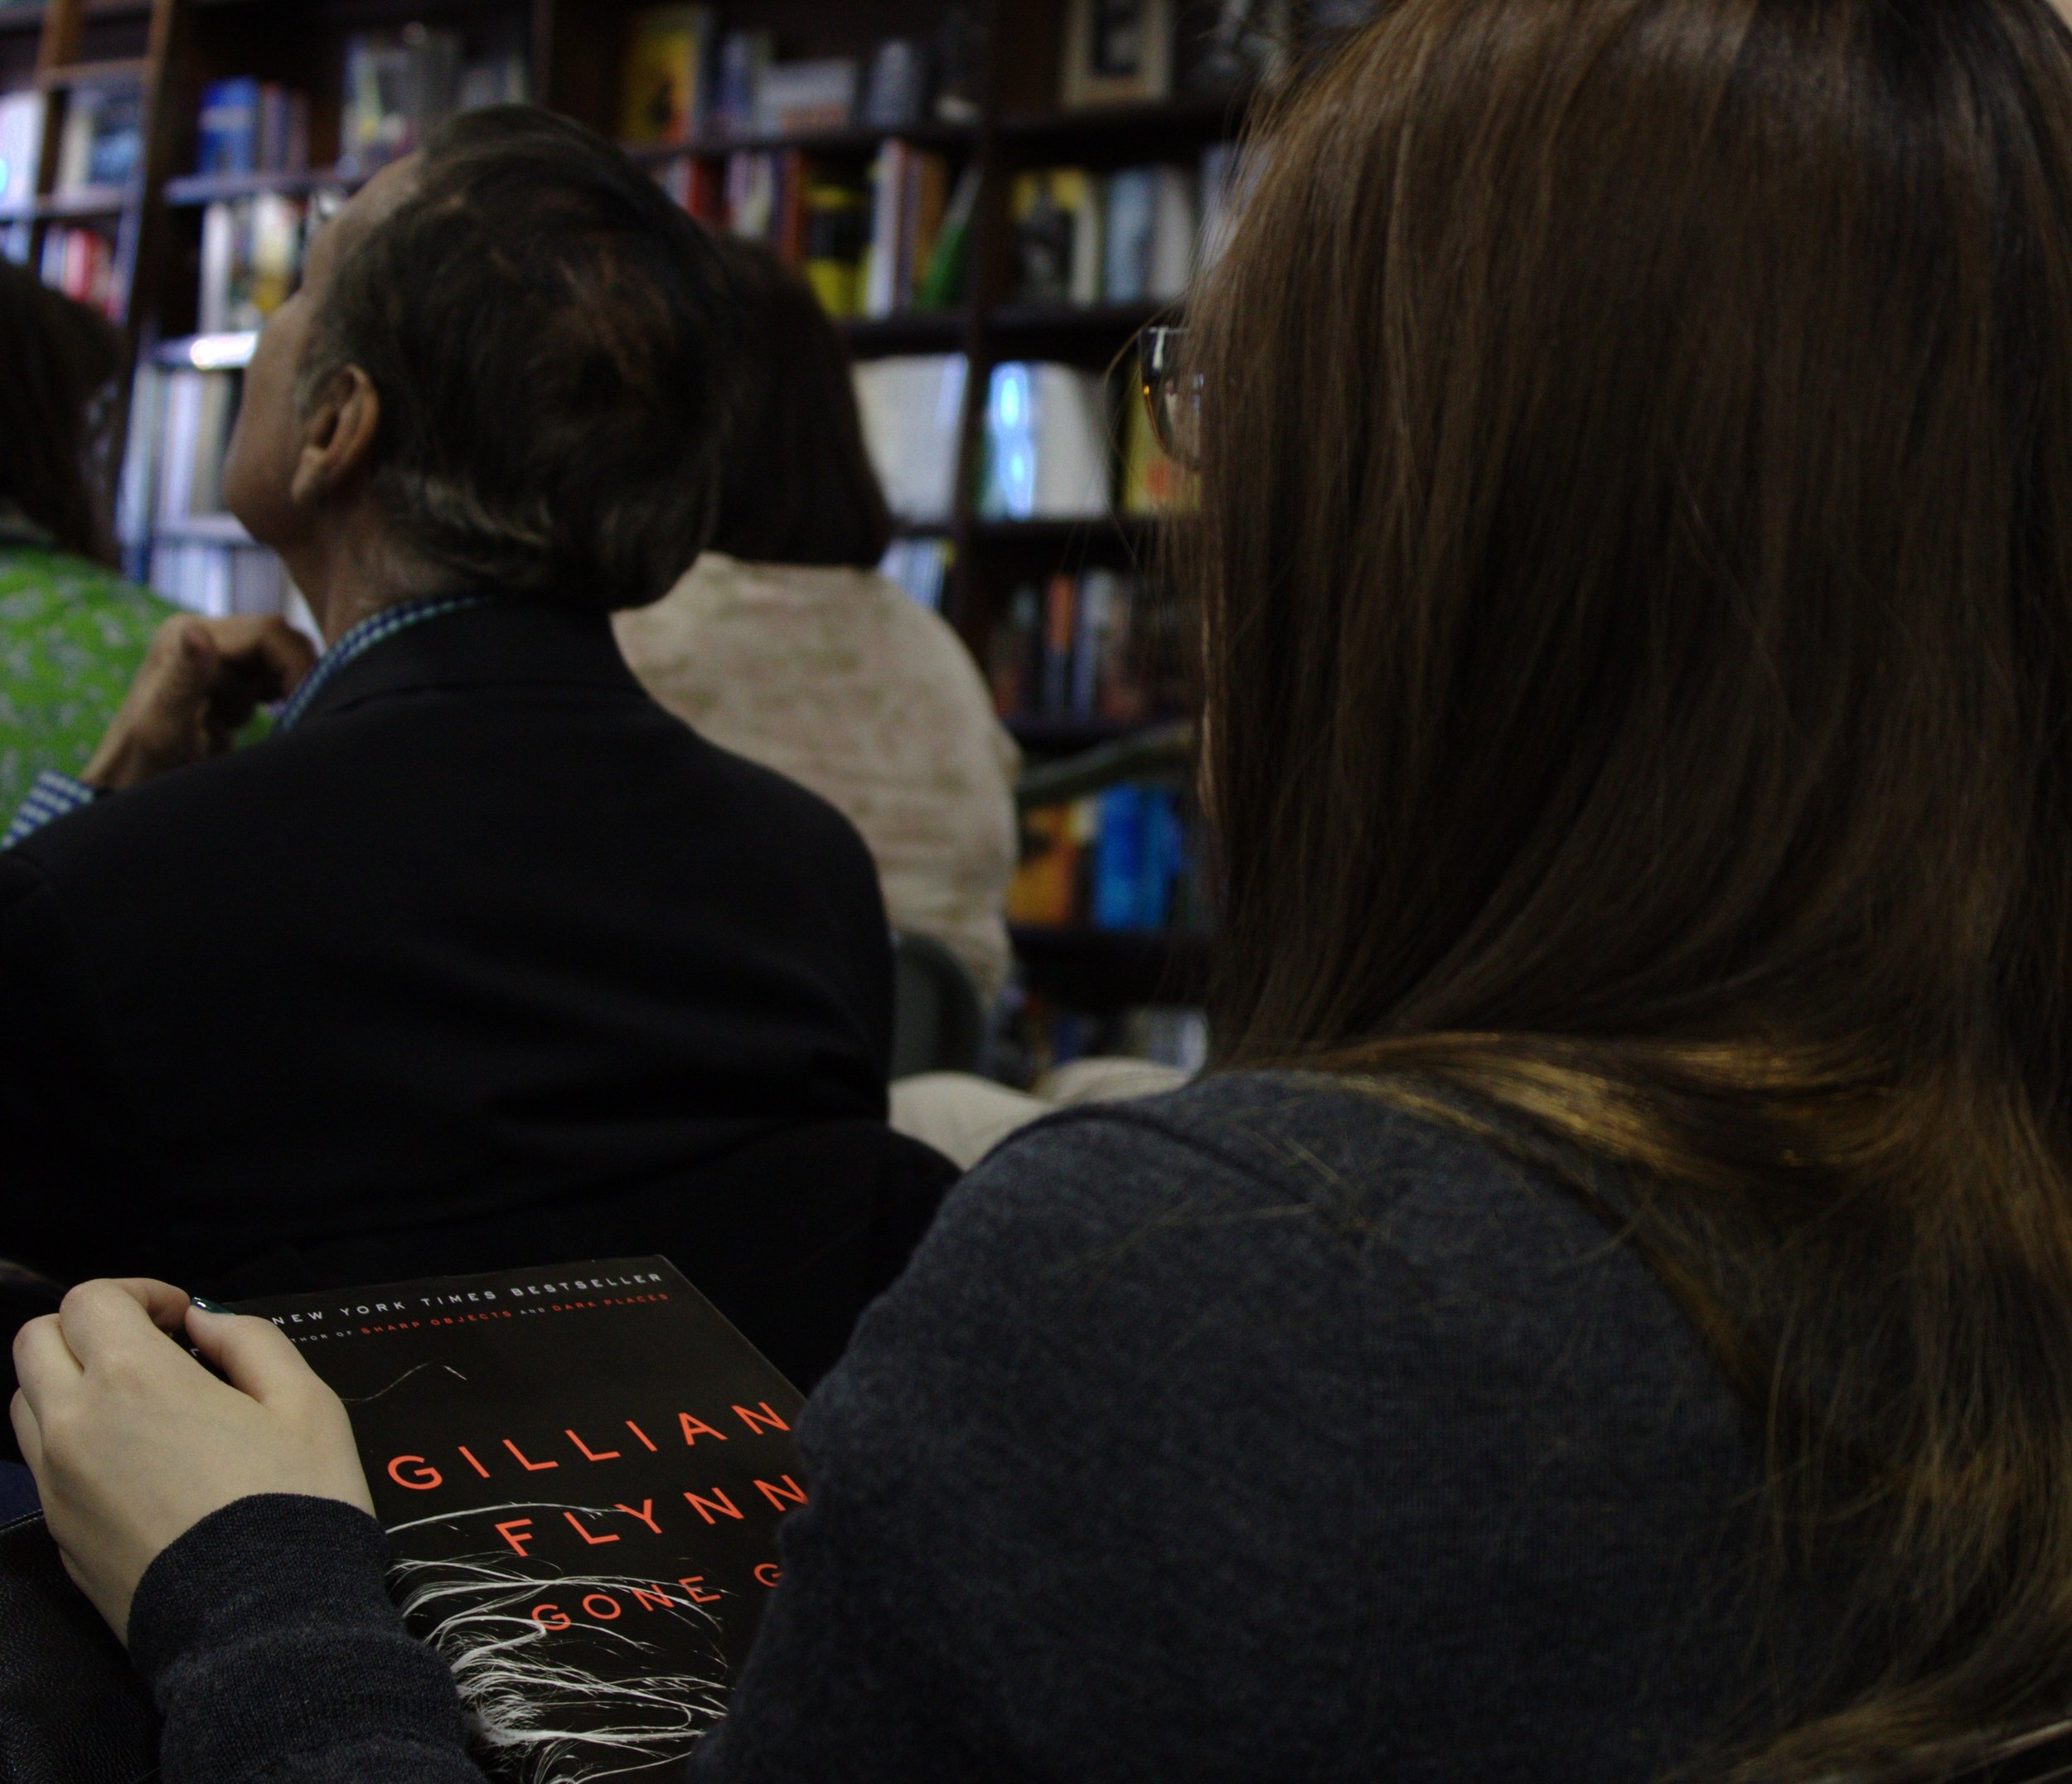 """A young woman holds her copy of Gillian Flynn's """"Gone Girl"""" in the audience at an event on April 24 in New York City where Flynn discussed the book and her writings. Photo by Jennifer Verzuh."""